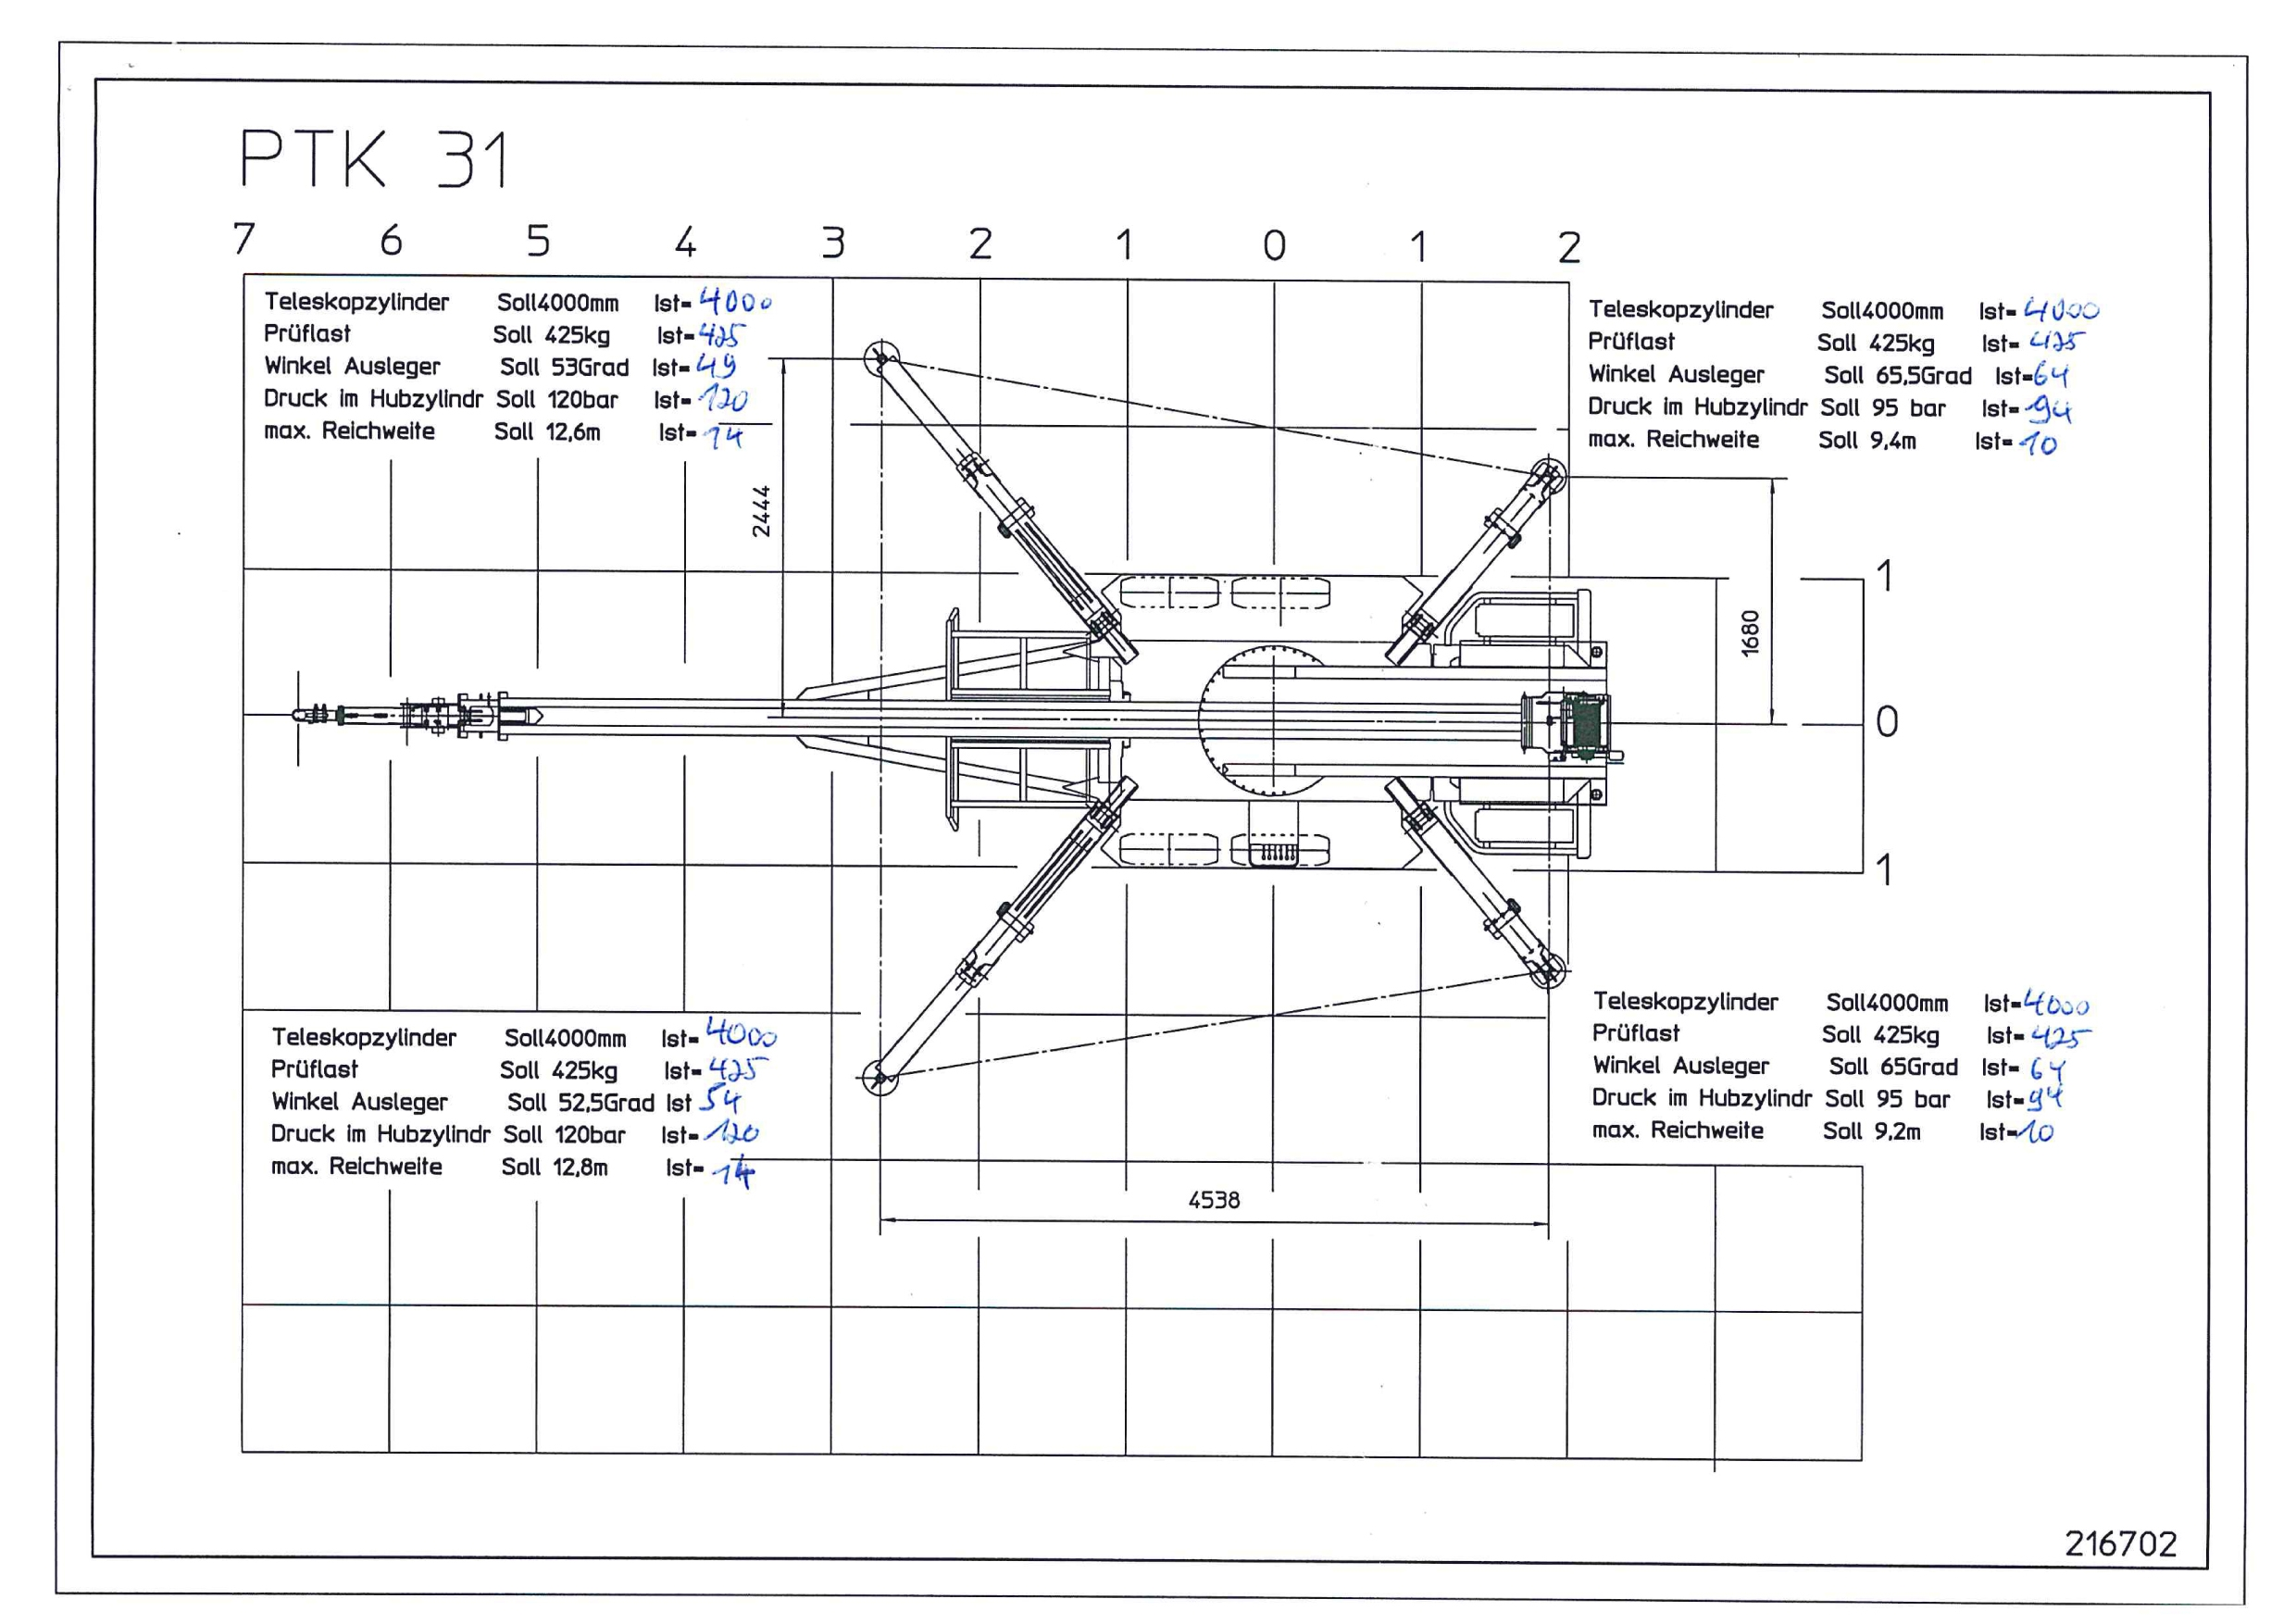 PTK 31 Crane Specifications